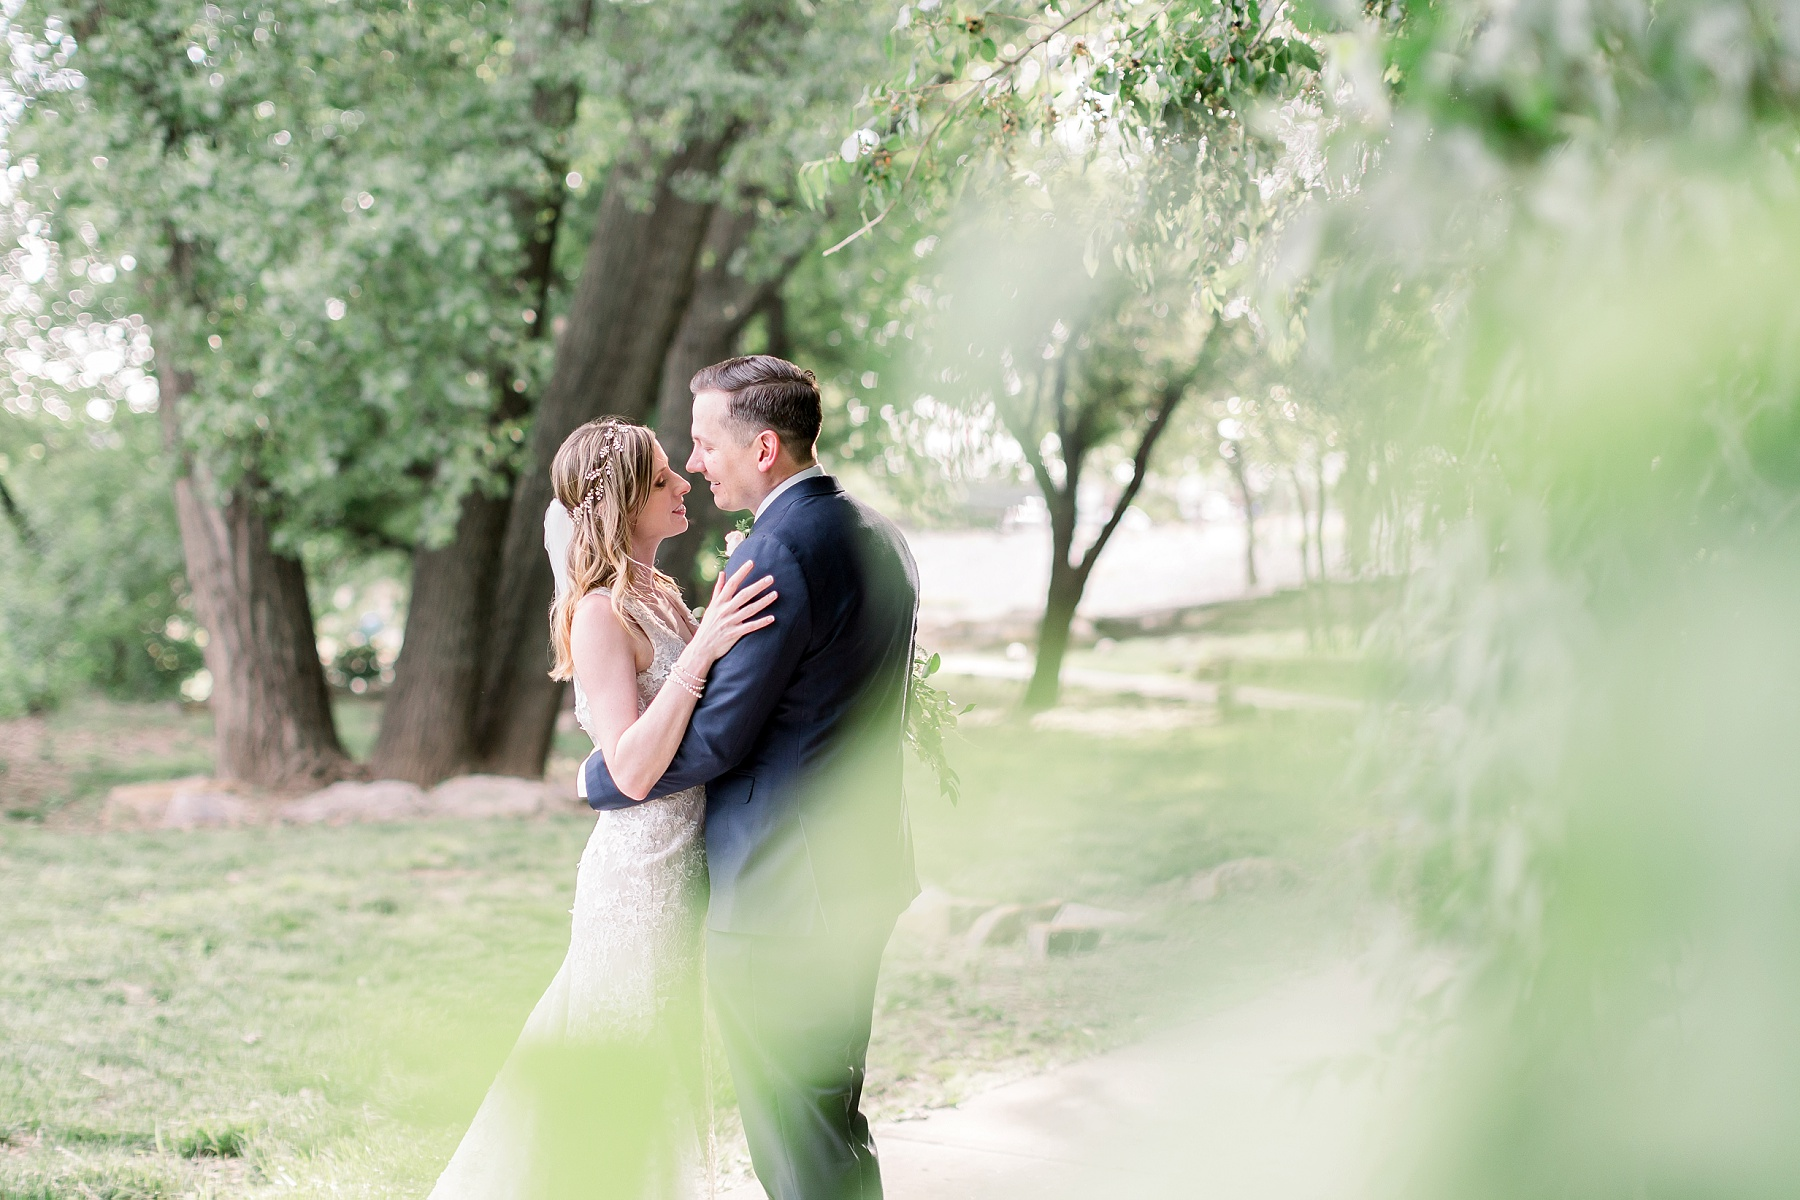 adventurous-authentic-wedding-engagement-photography-kansas-city-elizabeth-ladean-photo_5430.jpg